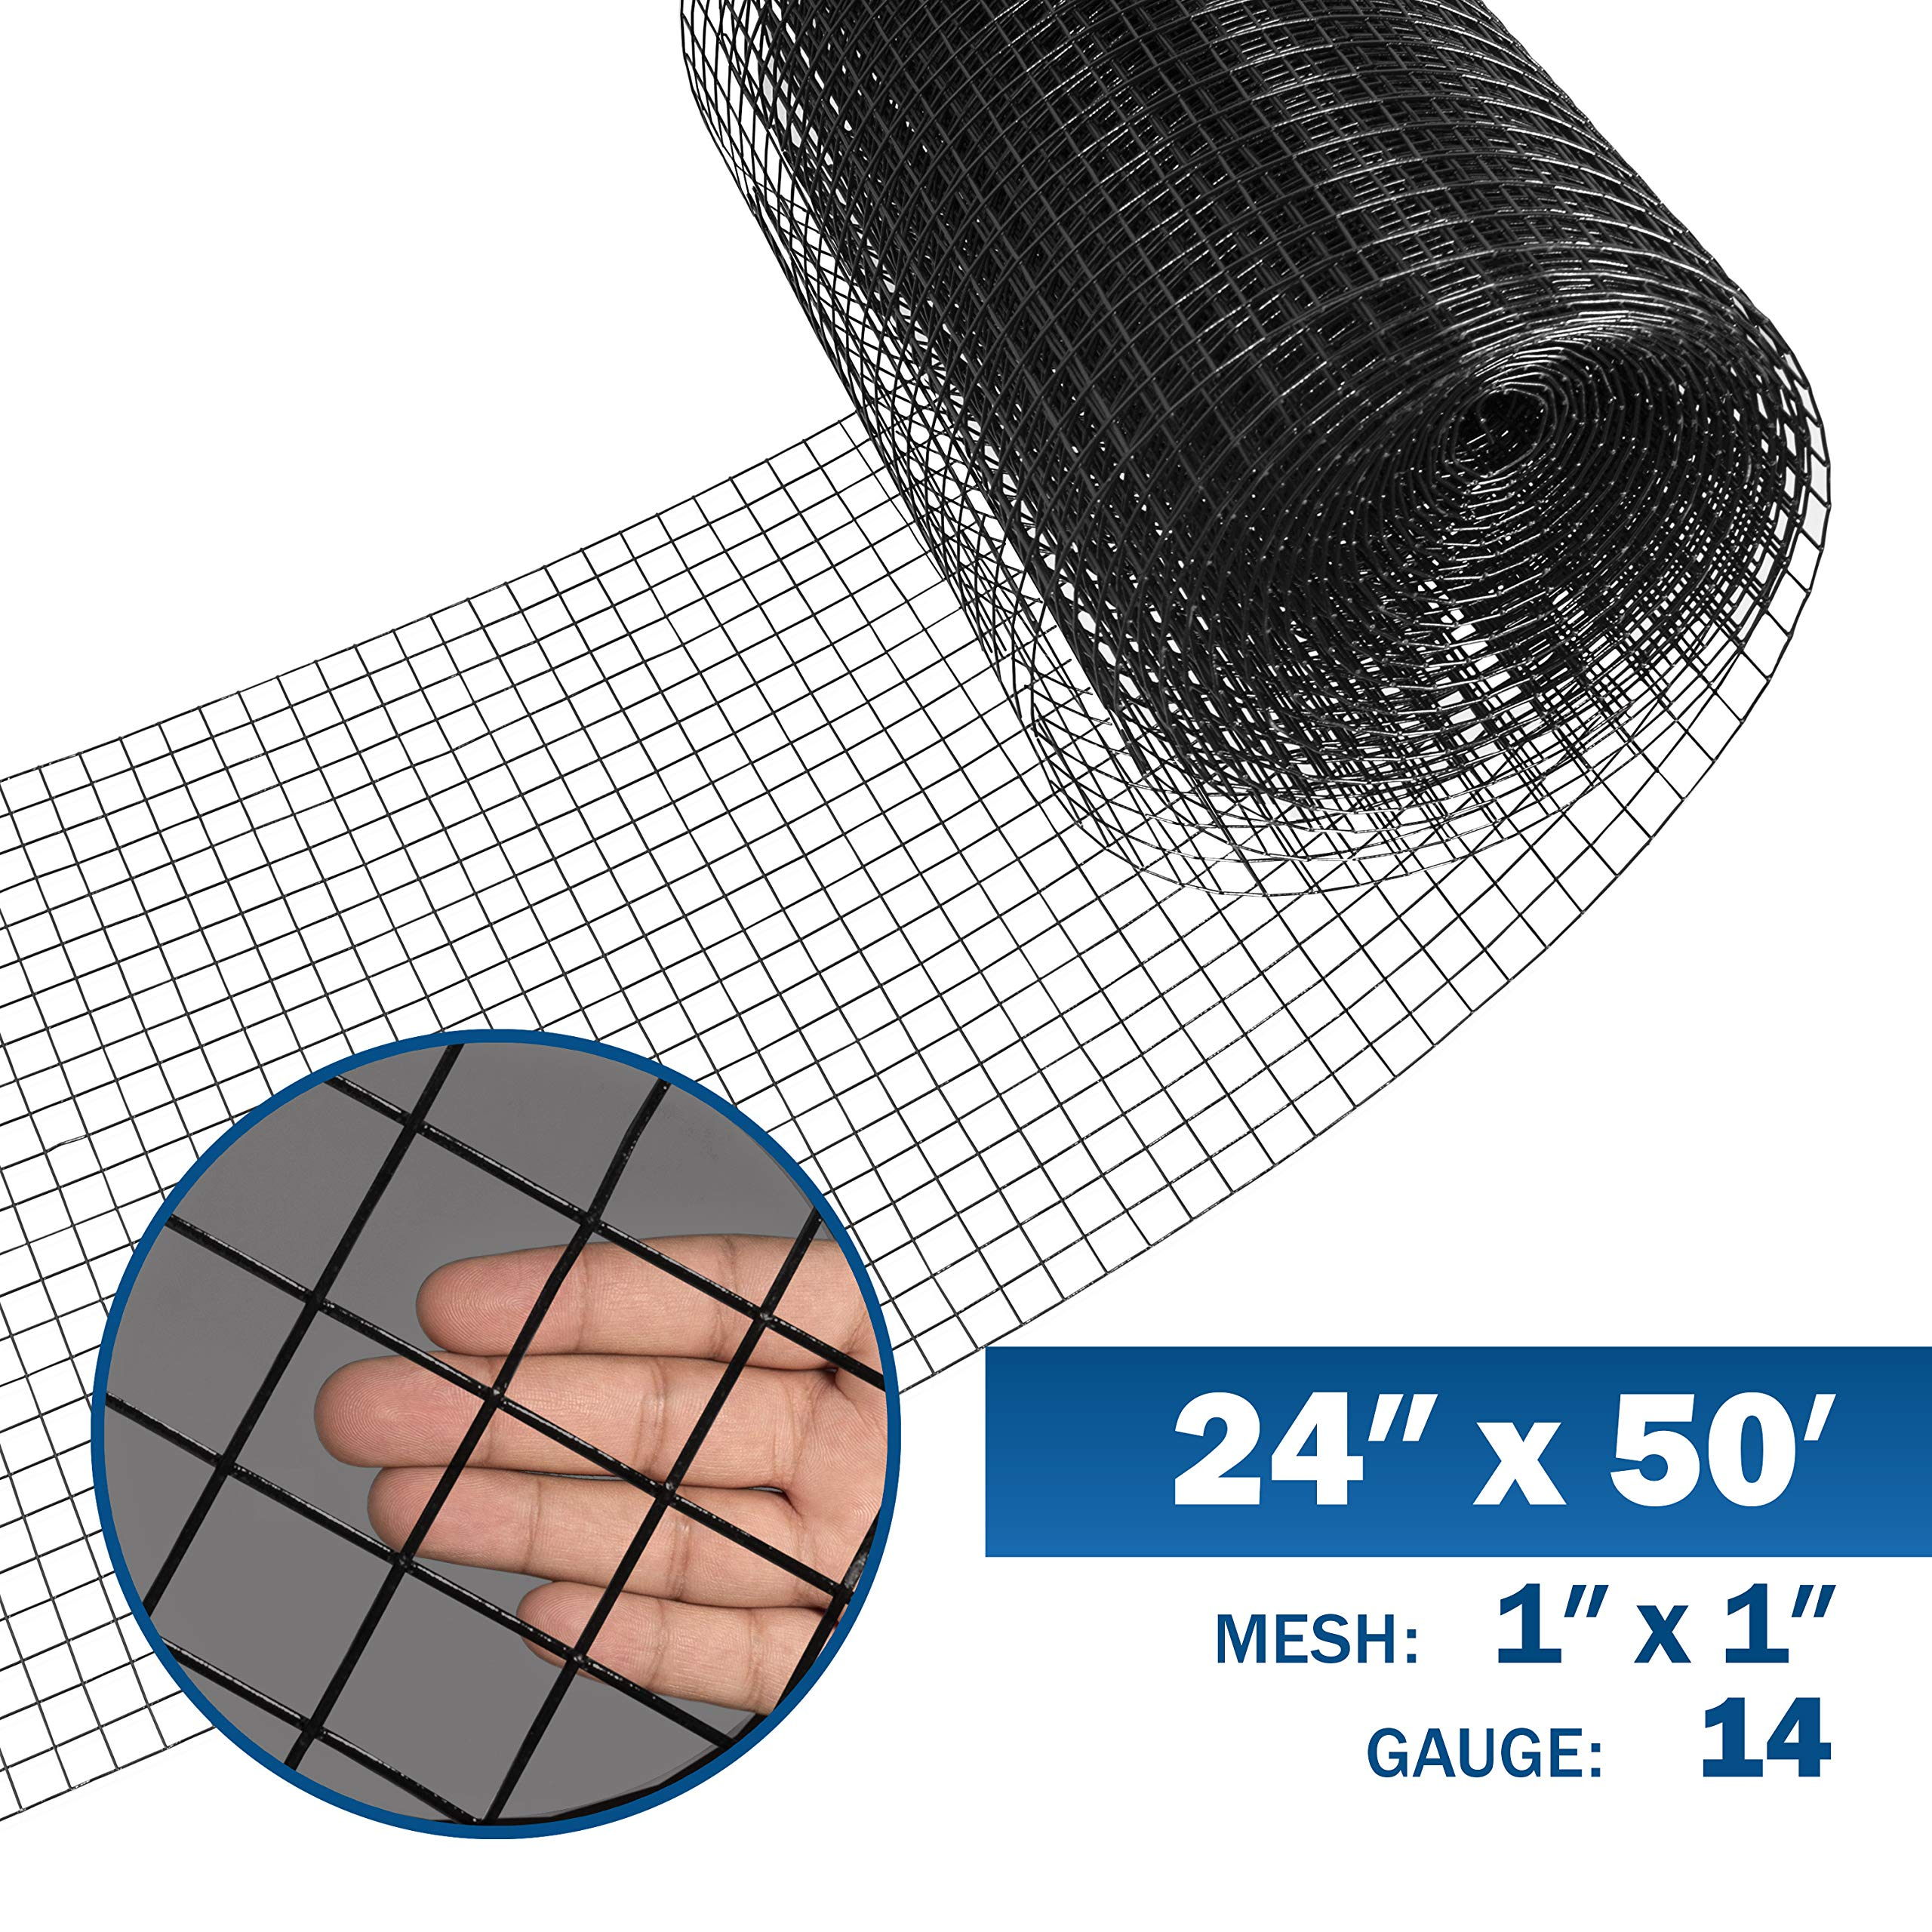 Fencer Wire 14 Gauge Black Vinyl Coated Welded Wire Mesh Size 1 inch by 1 inch (2 ft. x 50 ft.) by Fencer Wire